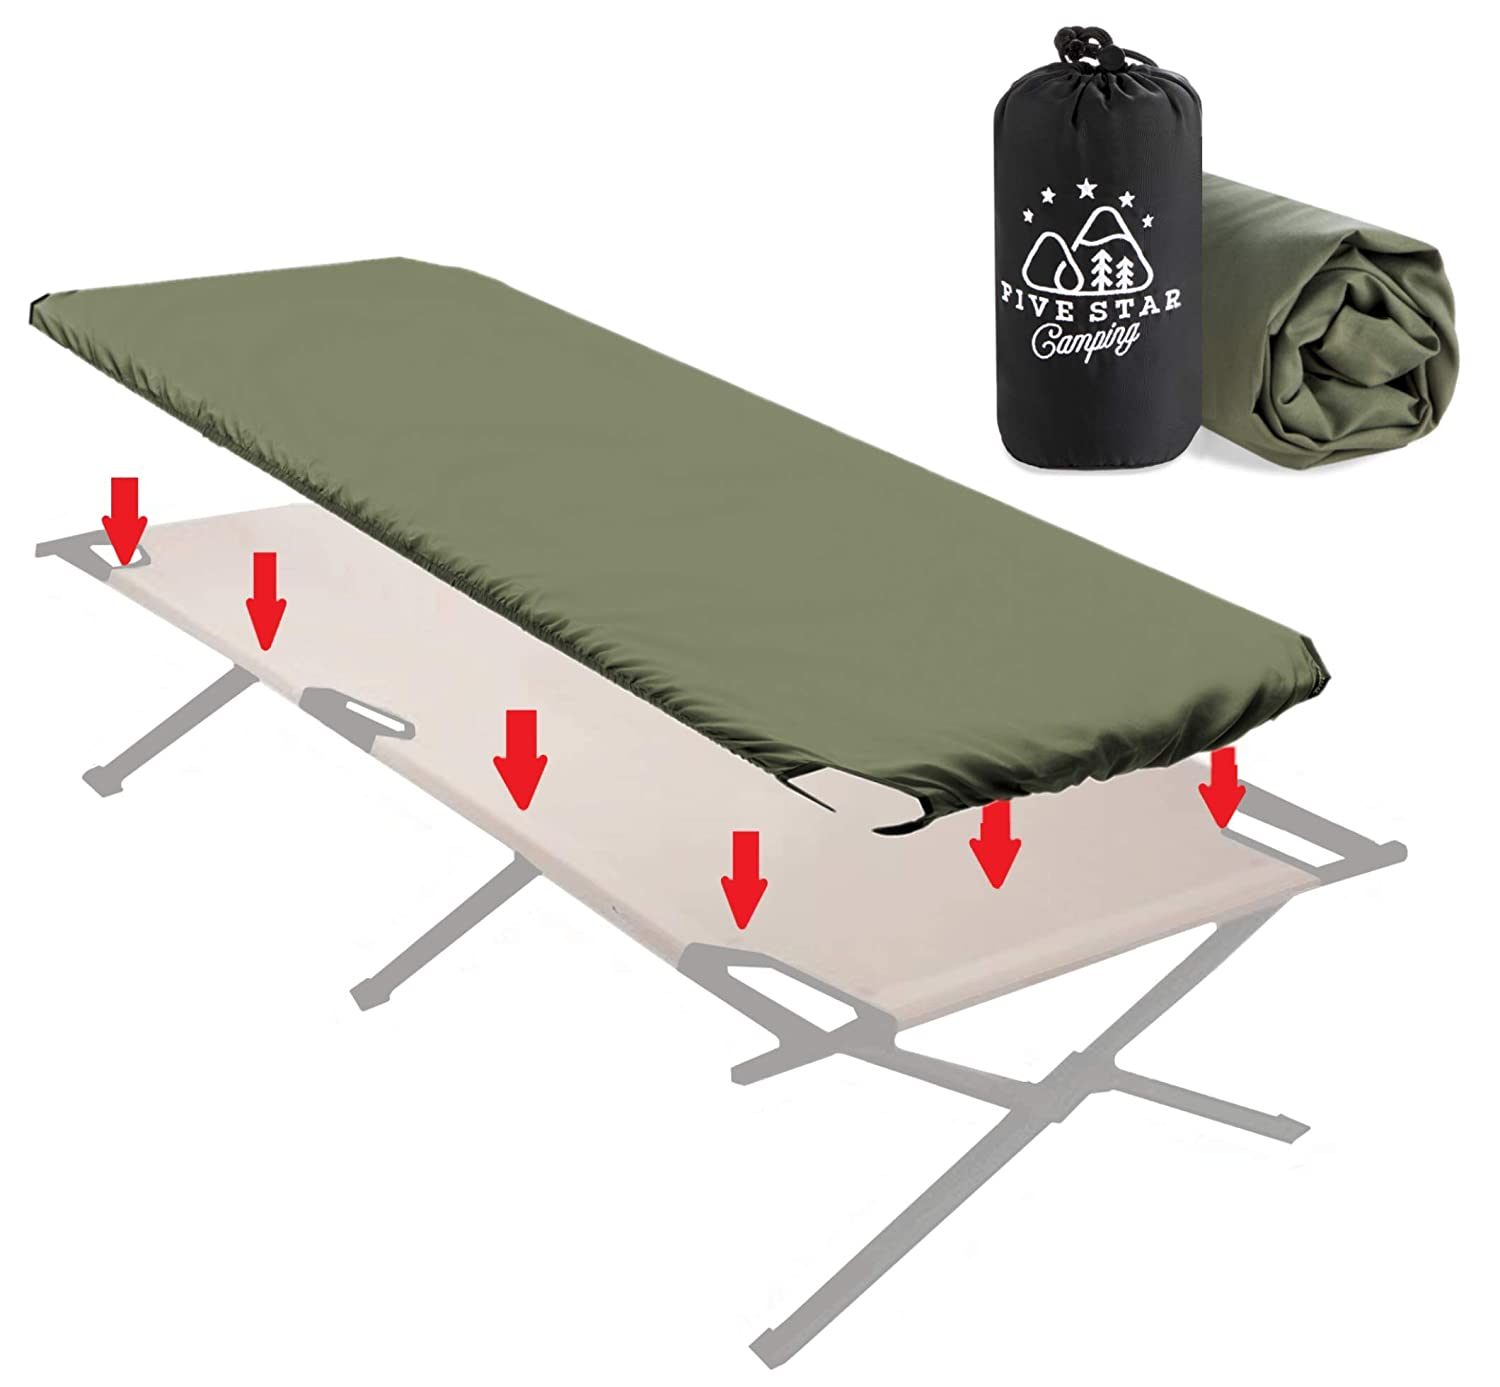 Keeps Your Sleeping Pad Secure Too! Travel Cots and Folding Cots Camping Bedding That fits Most Army Cots Fitted Camping Cot Sheet for Adult Sleeping Cots Get Glamping Military Cots